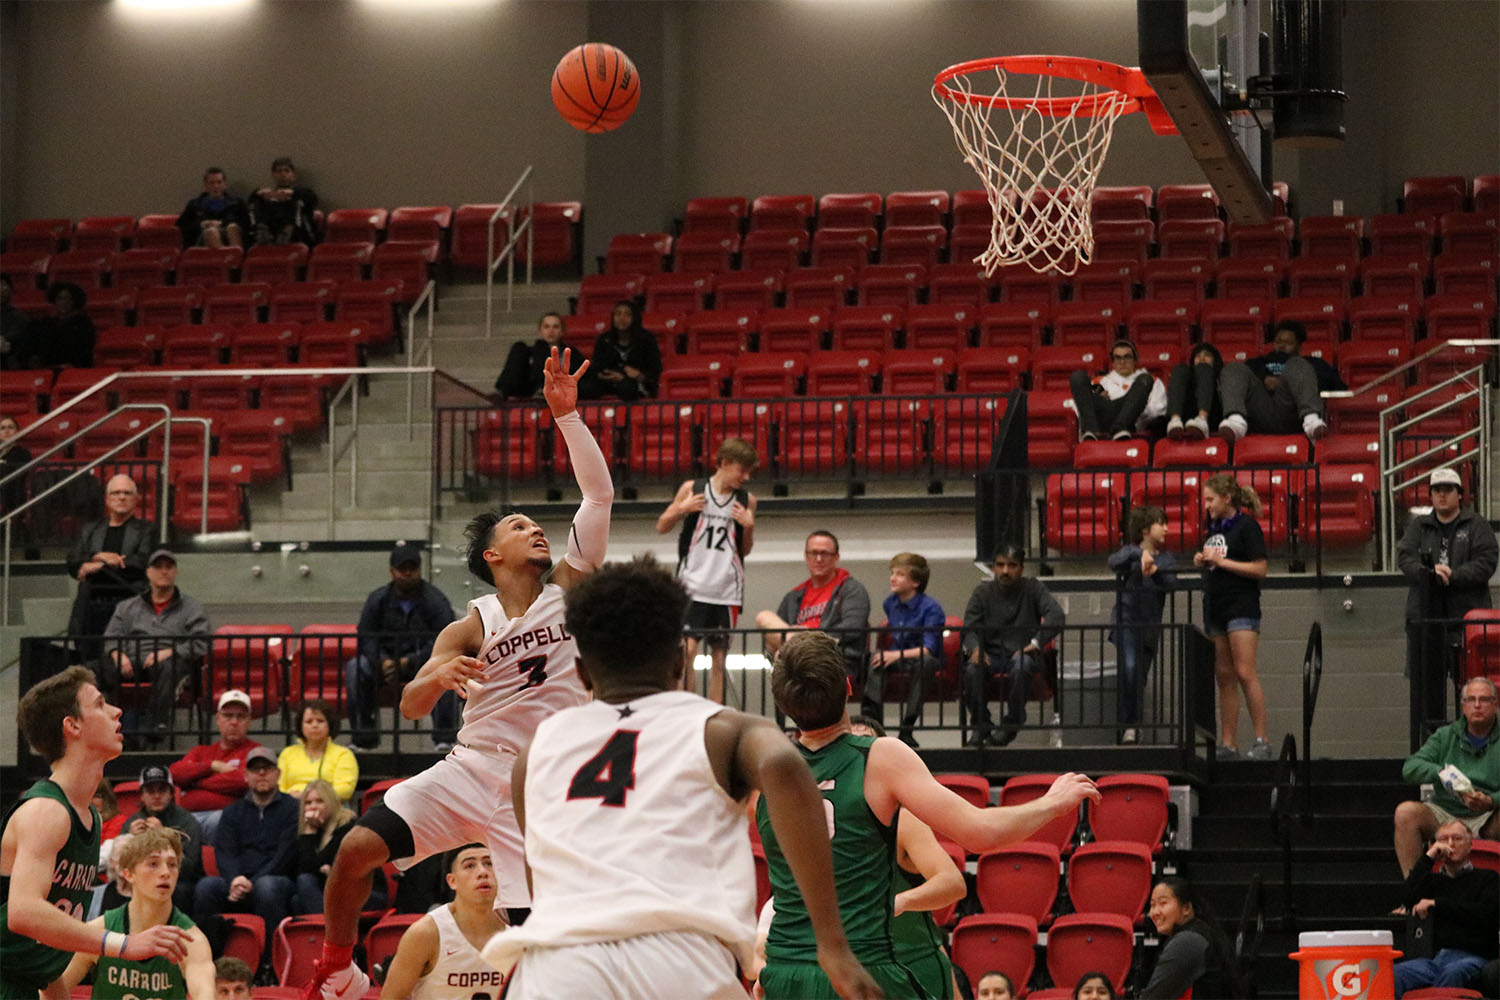 Coppell senior guard Tariq Aman goes up for a layup on Saturday against Carroll in the CHS arena. The Cowboys lost to the Dragons, 70-53, in their first game of the season.